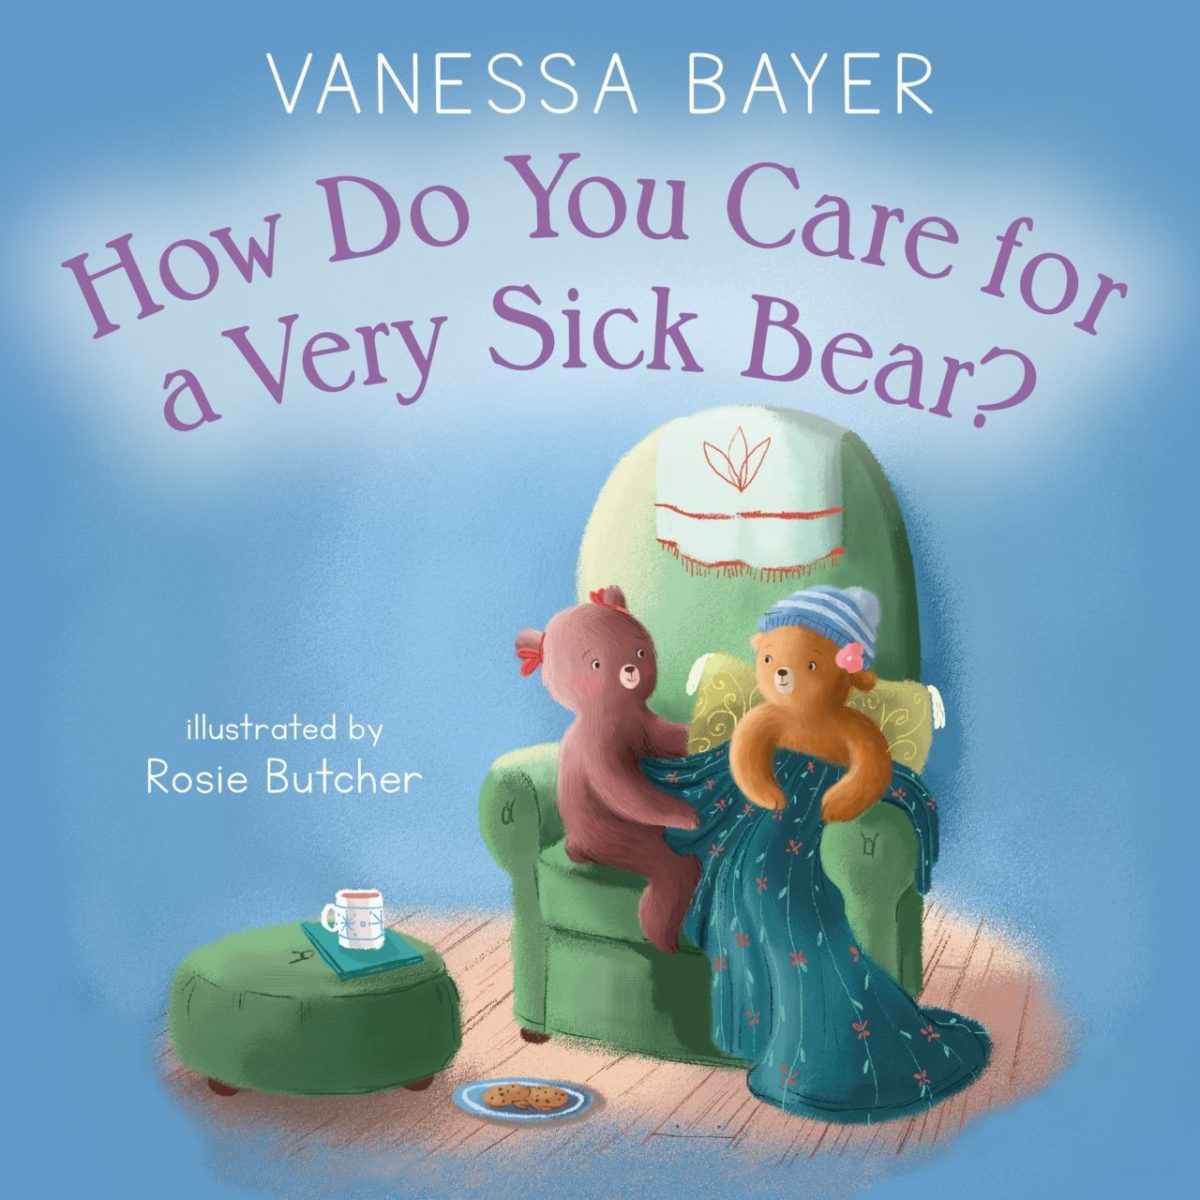 """The cover of """"How Do You Care for a Very Sick Bear?"""" by Vanessa Bayer, illustrated by Rosie Butcher"""